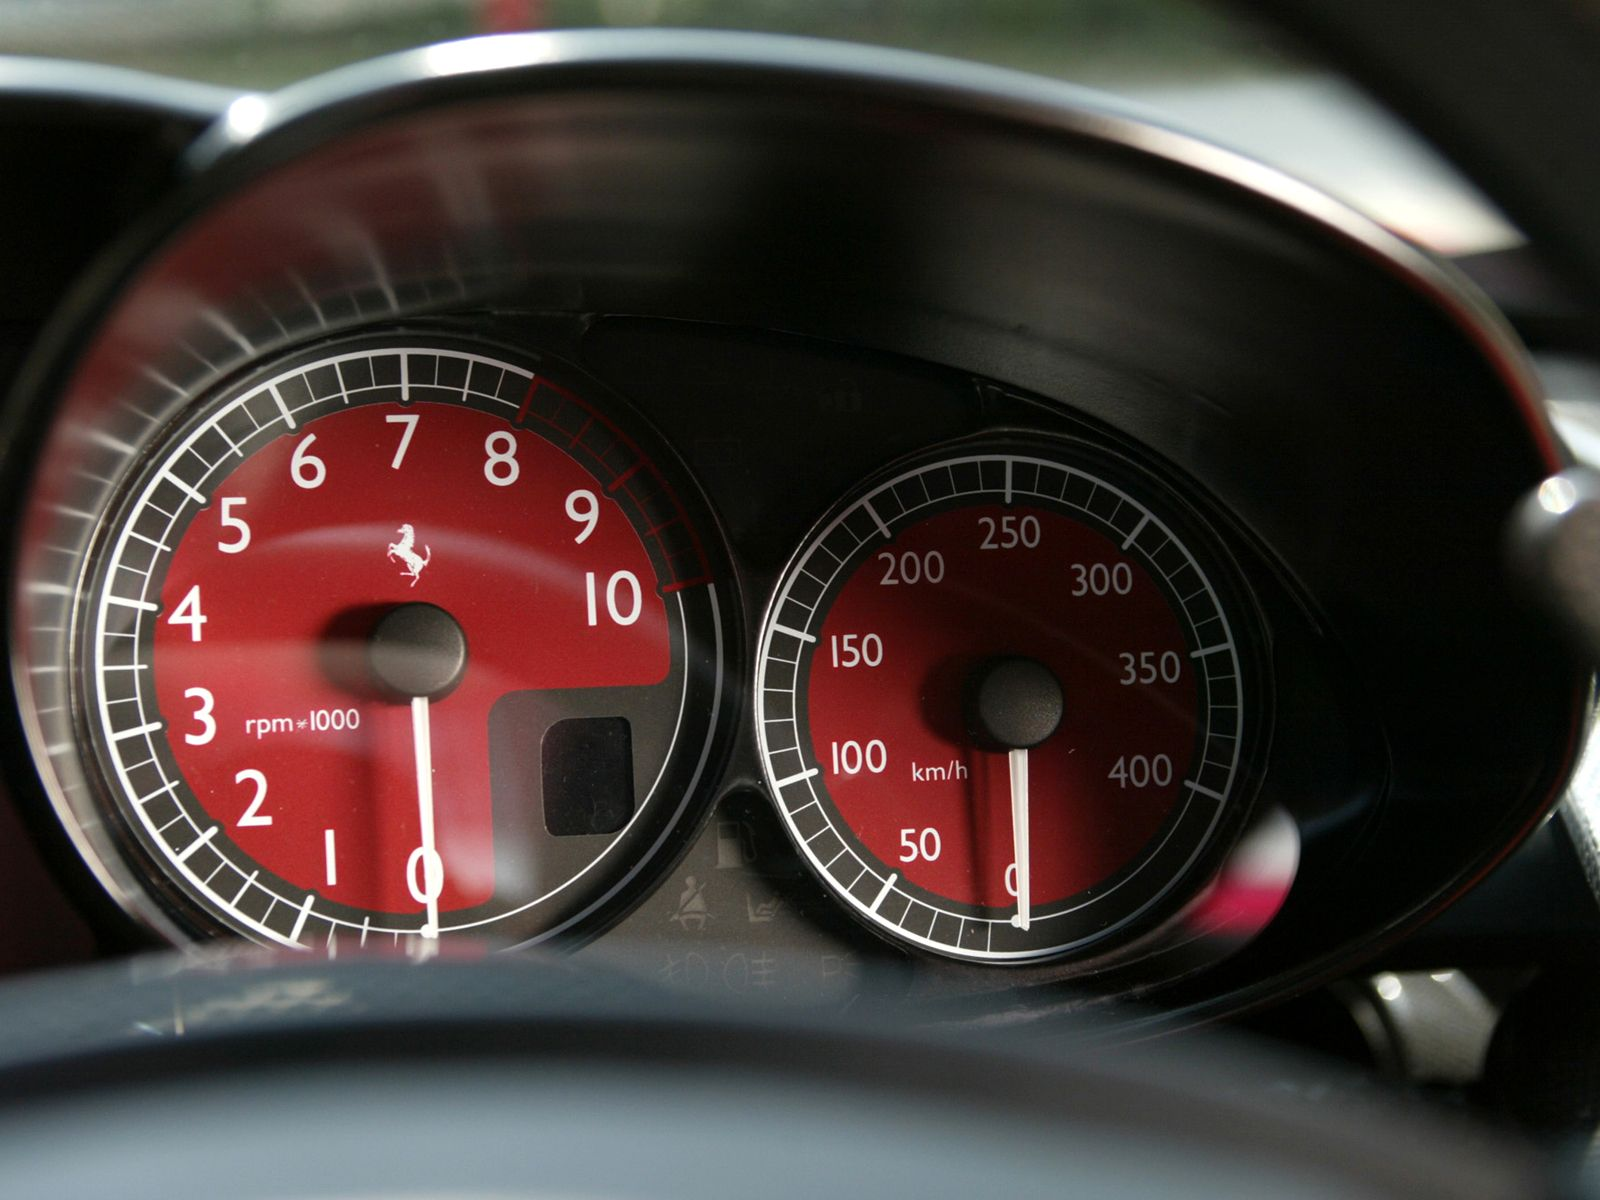 Top Speed of Ferrari Enzo 1